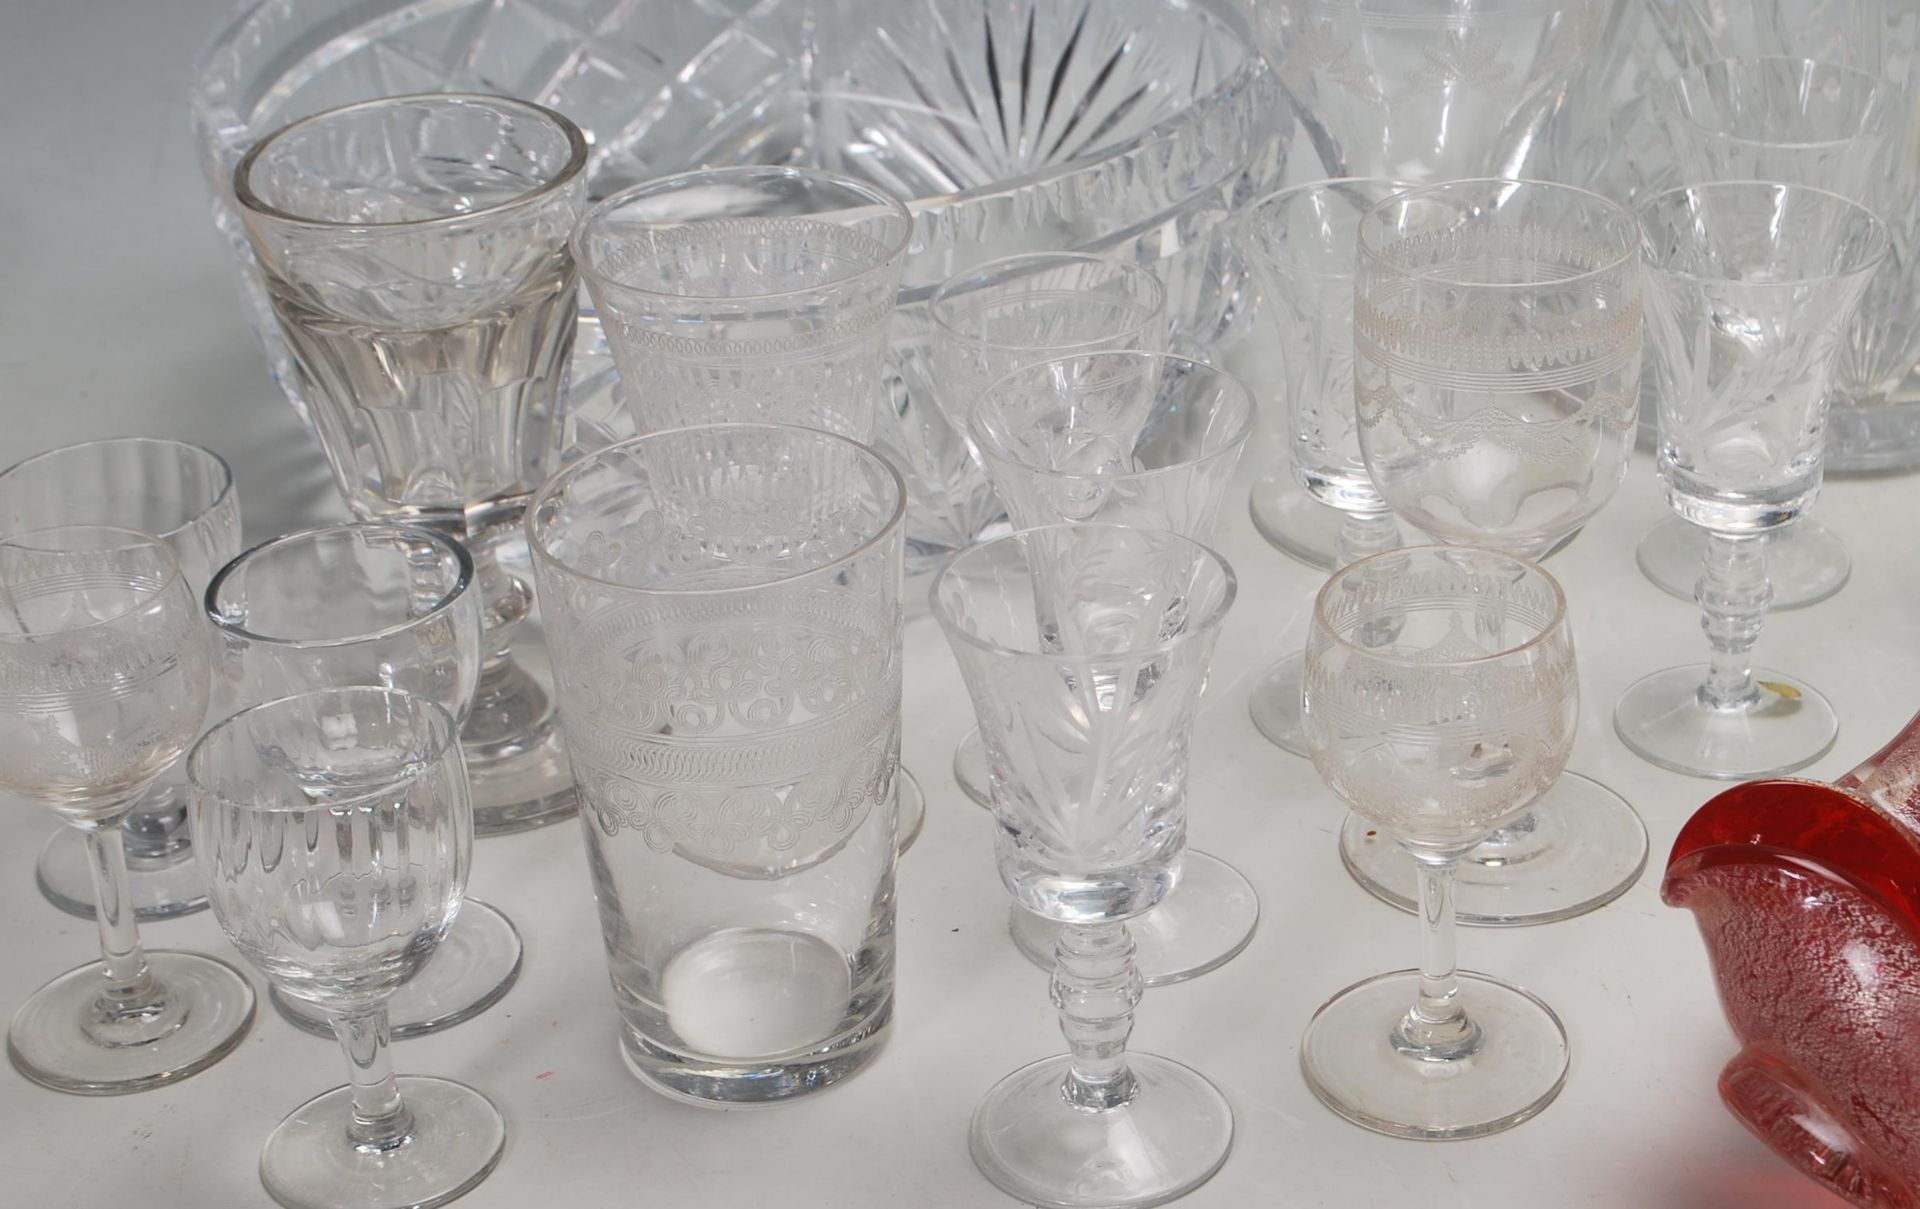 LARGE COLELCTION OF 10TH CENTURY AND LATER CRYSTAL GLASS - Image 5 of 10